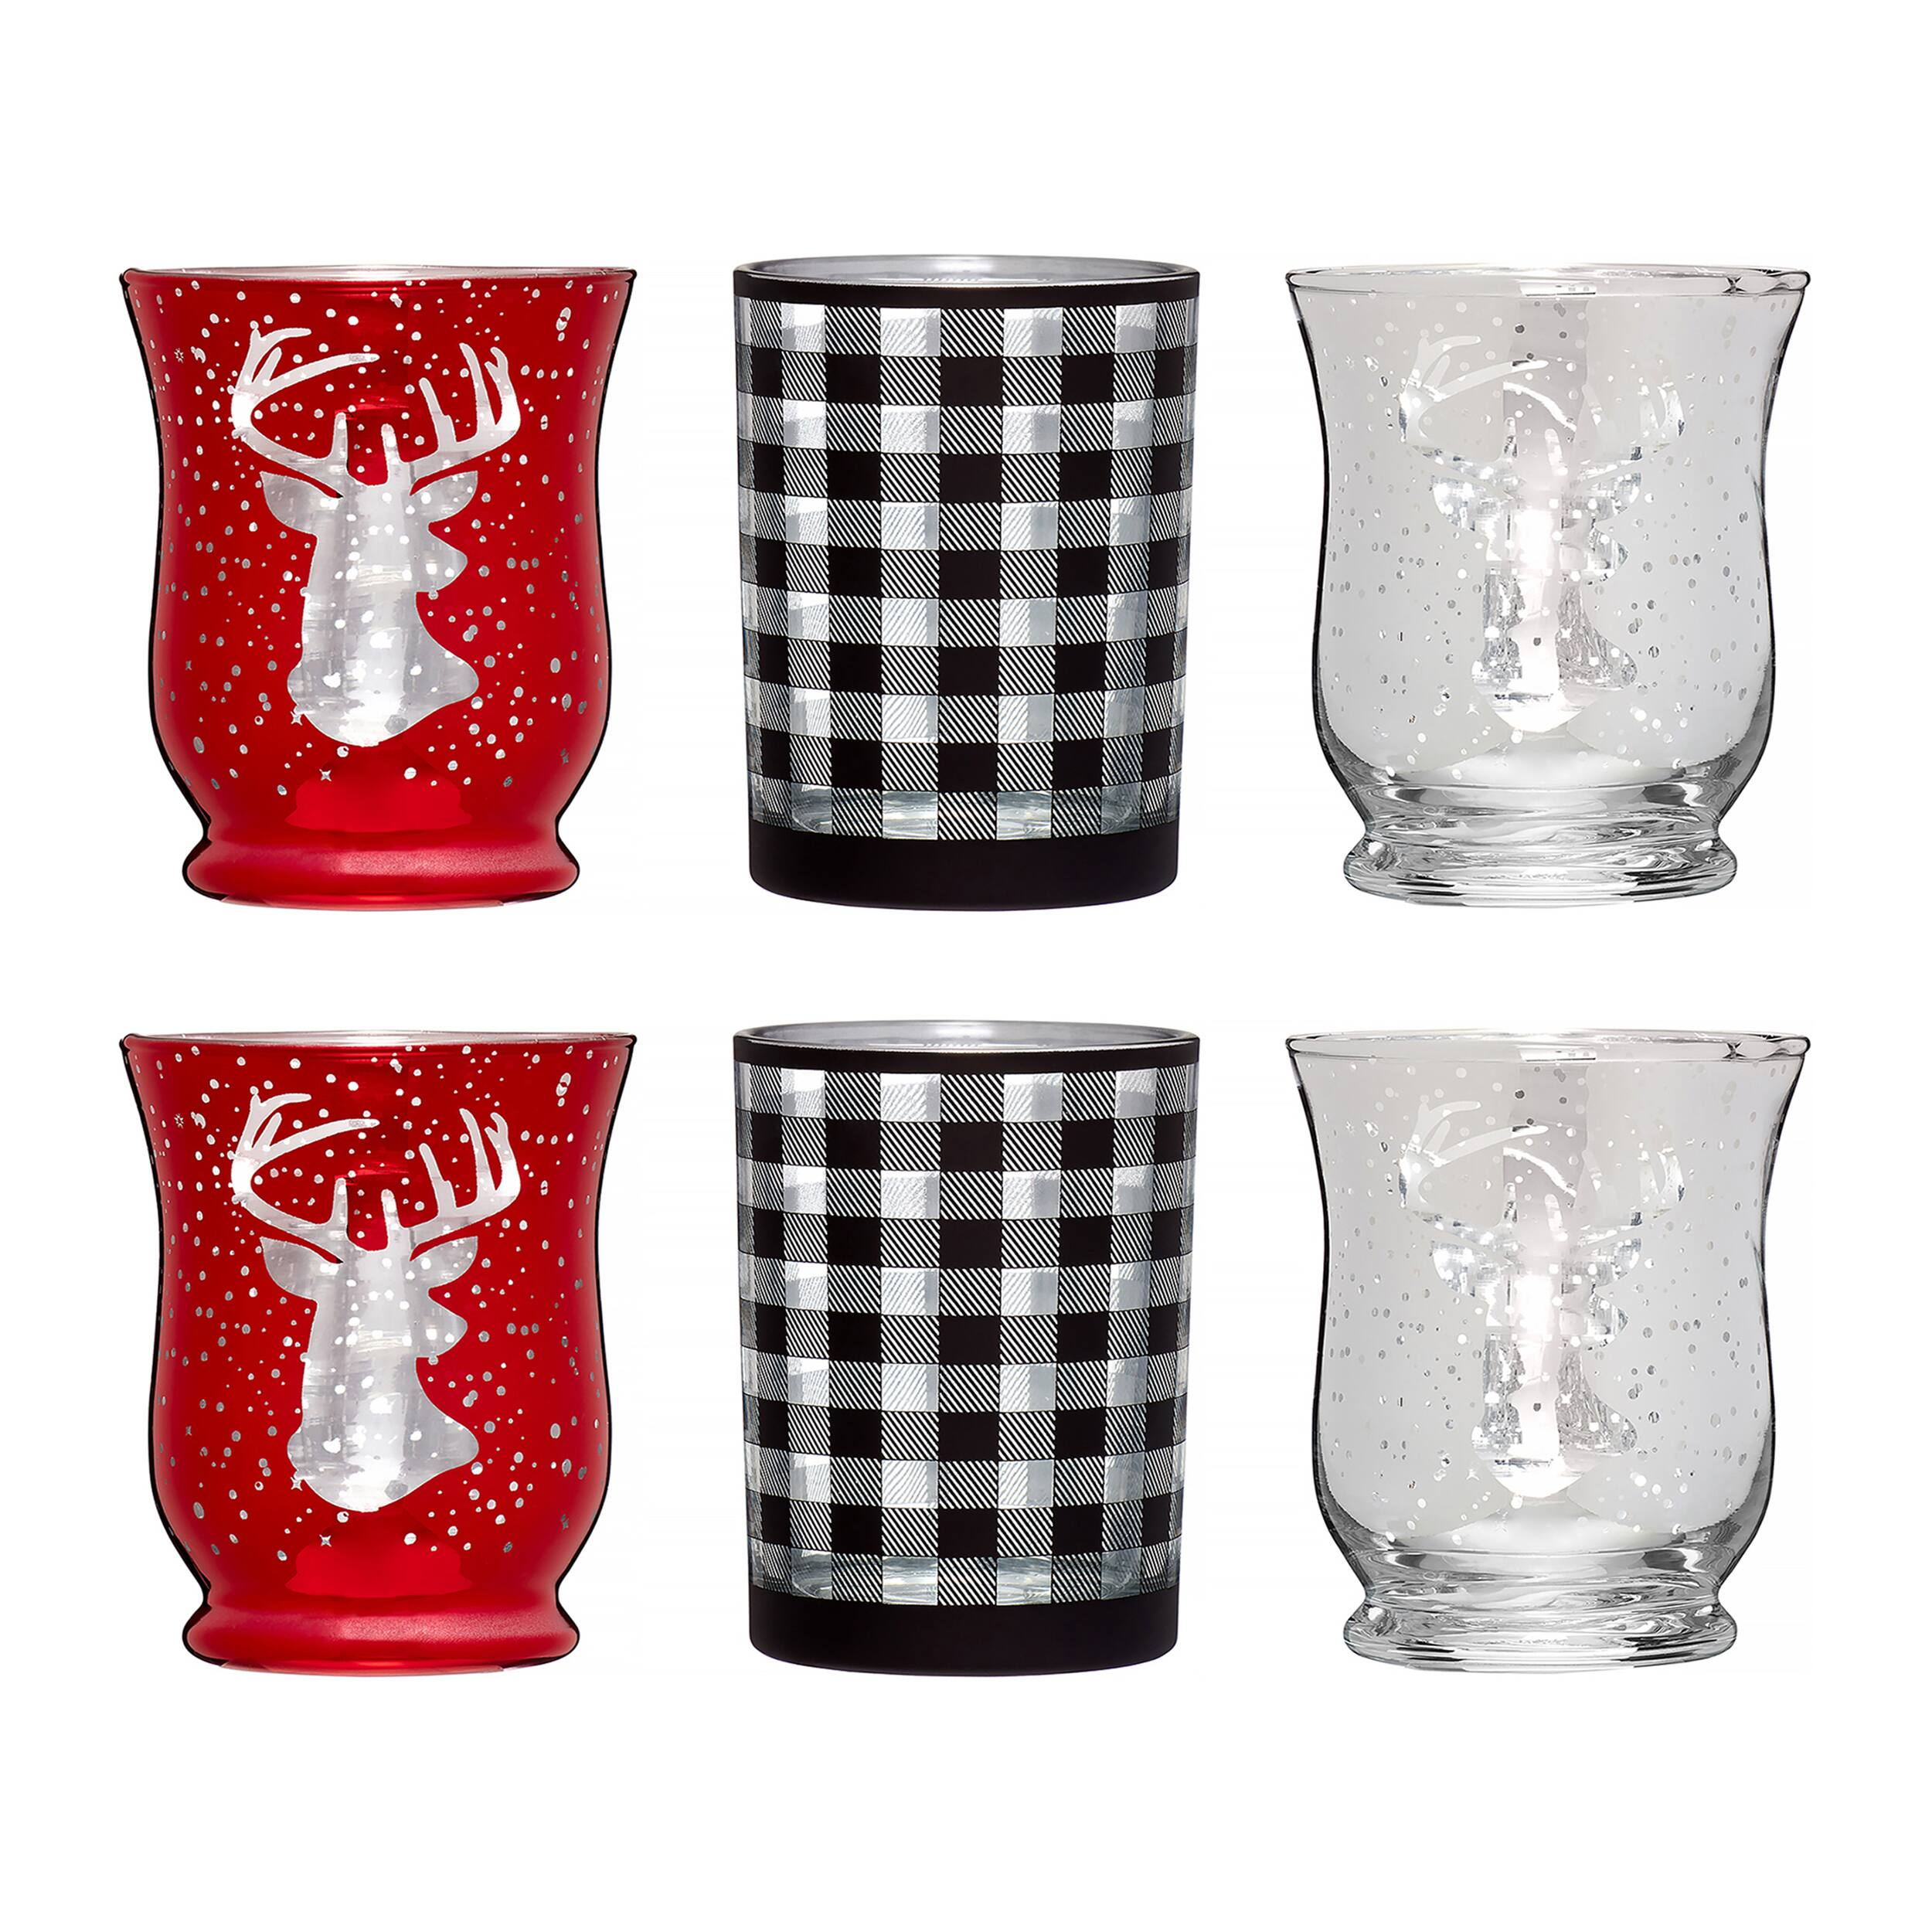 6-Pc Holiday Time Small Stag & Check Glass Votives $4 & More + Free Store Pickup at Walmart